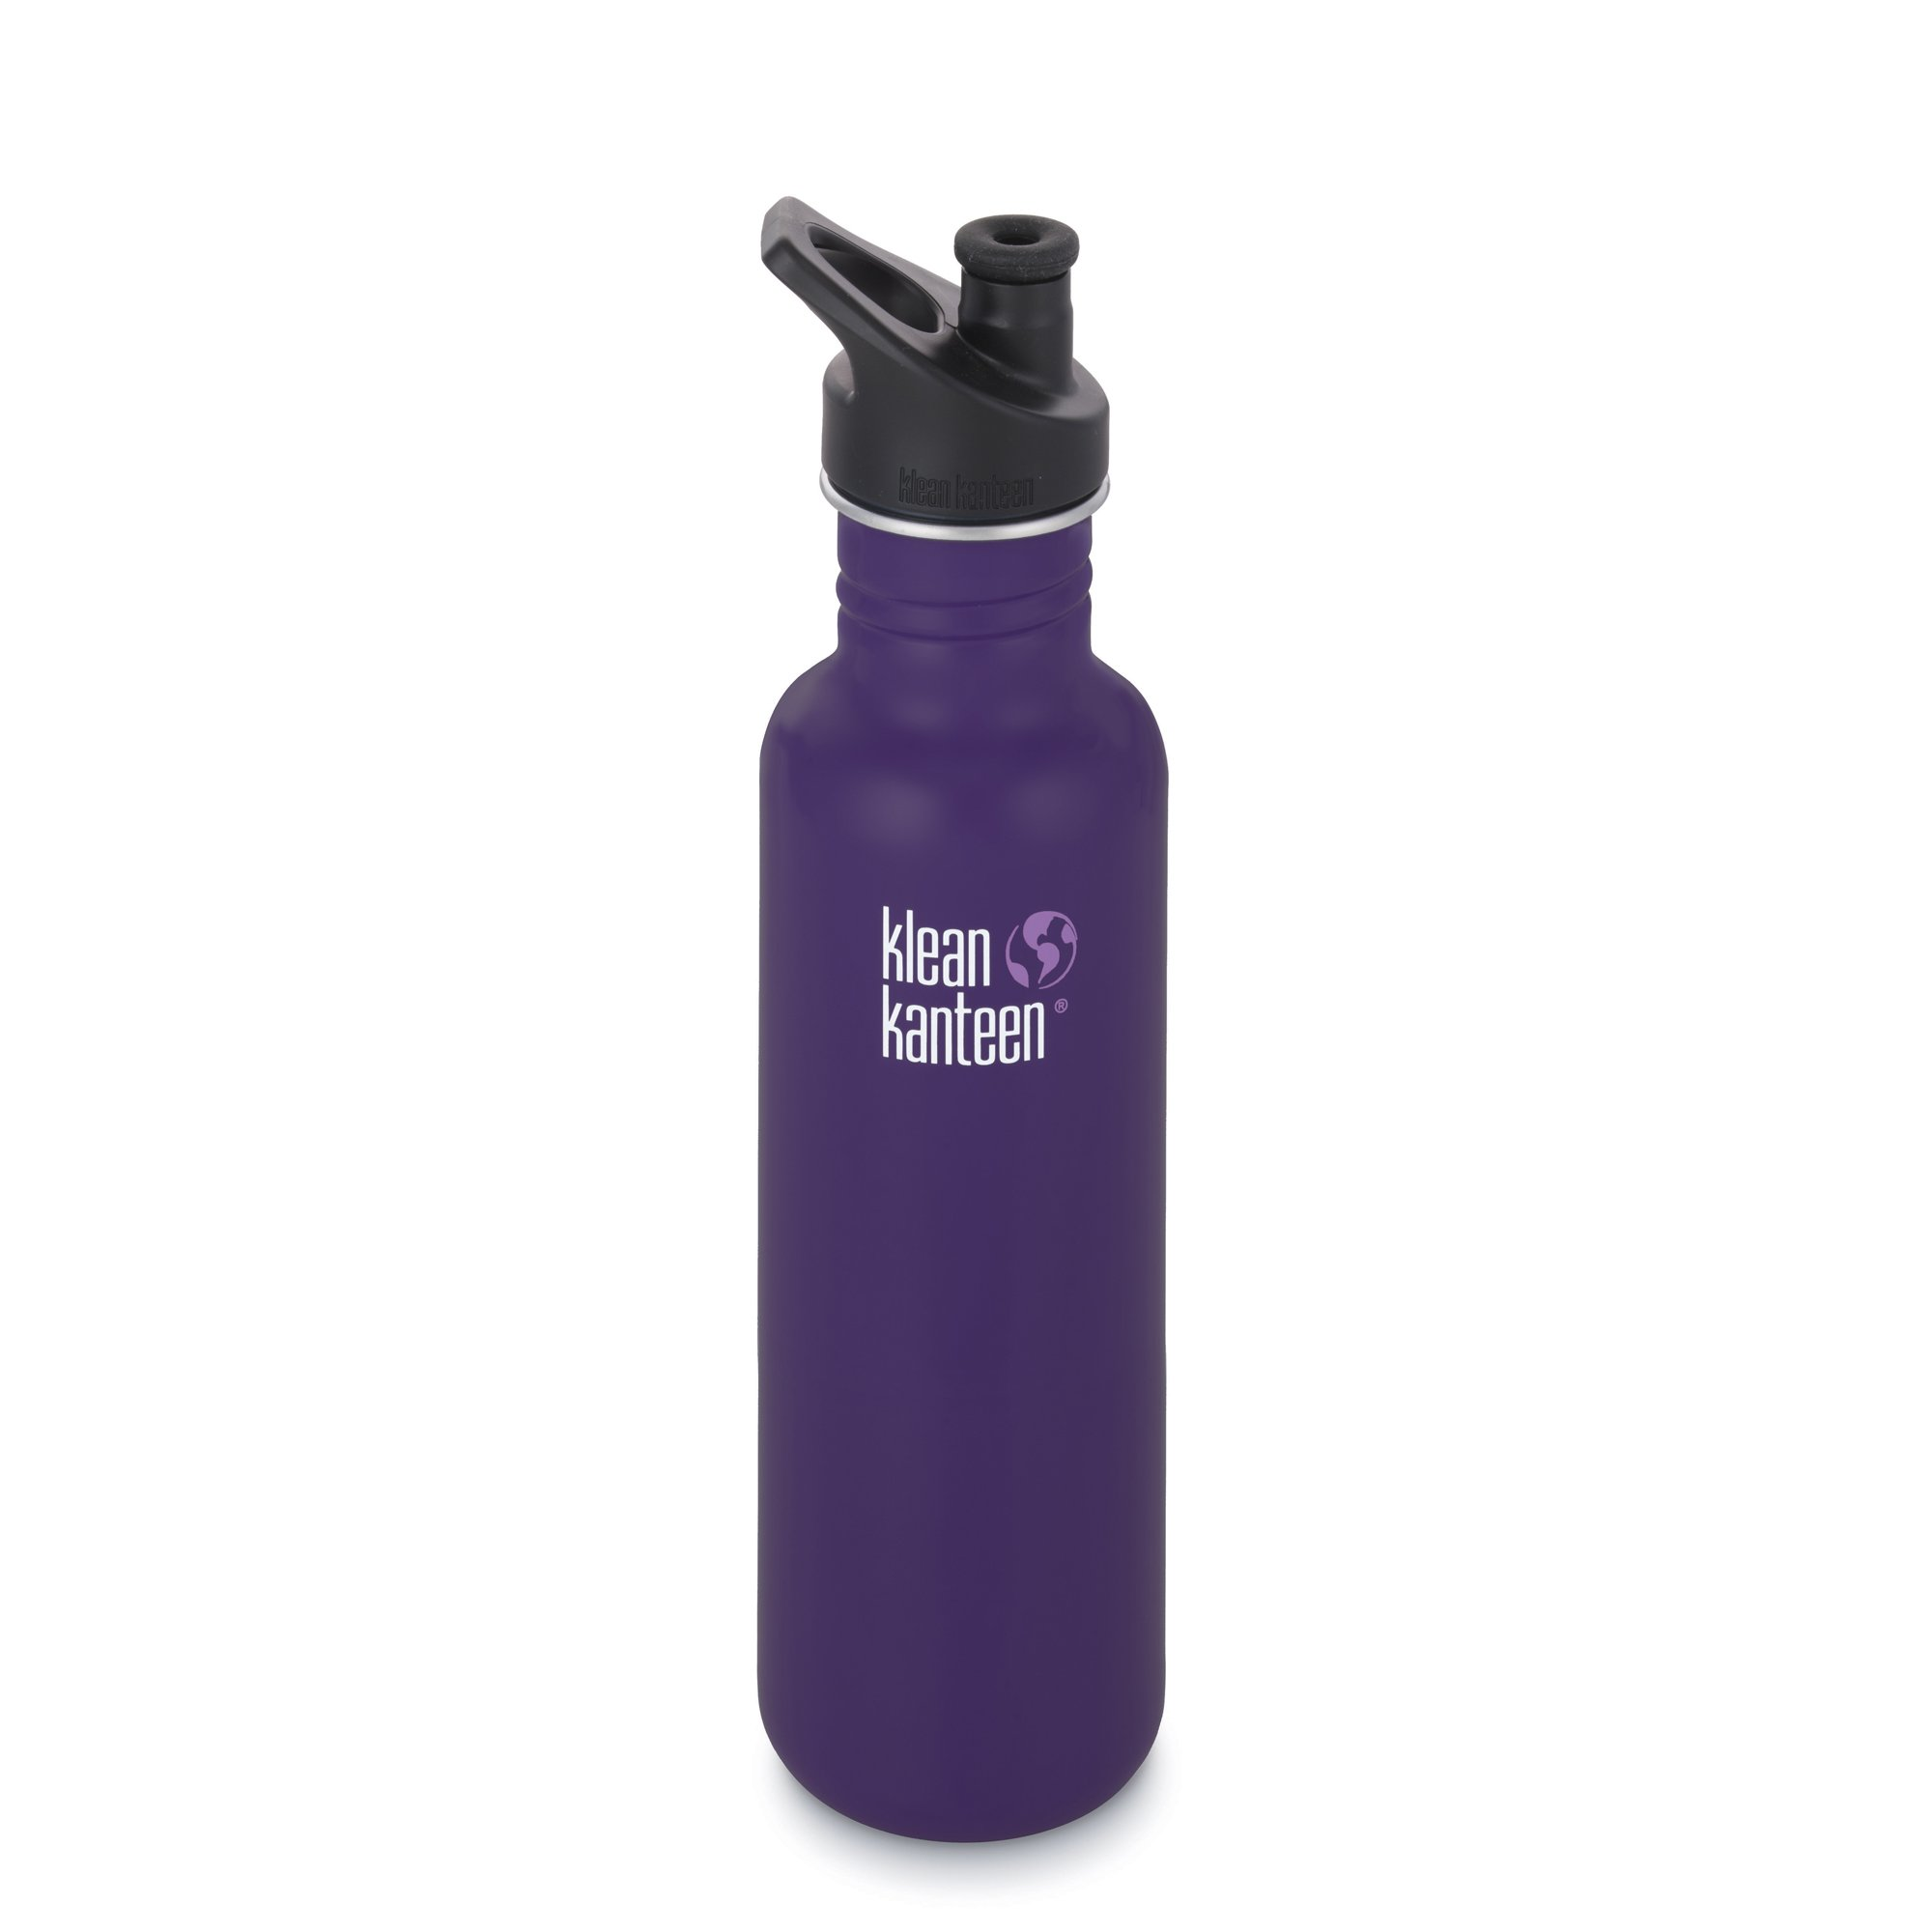 Klean Kanteen Classic Stainless Steel Bottle with Sport Cap, Berry Syrup - 27oz